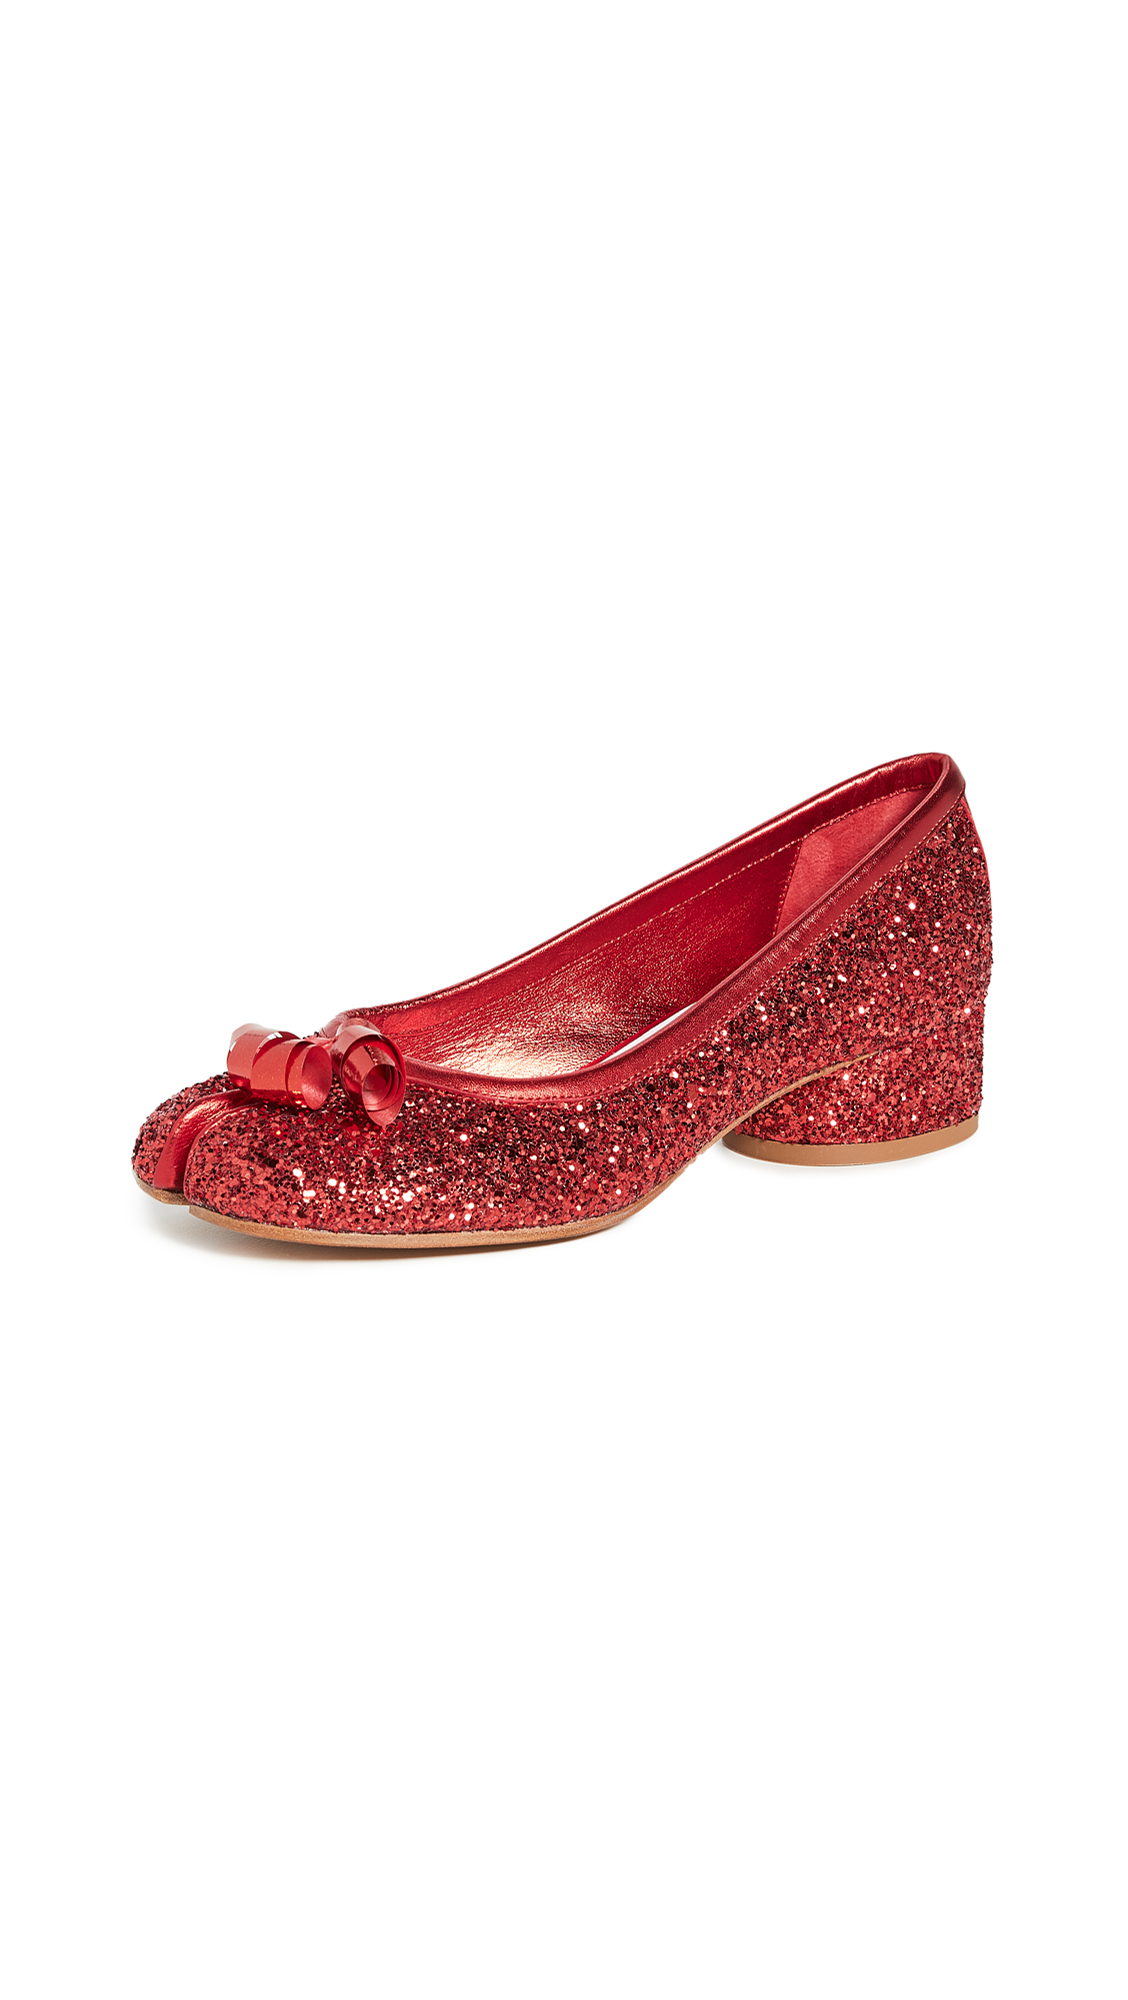 Photo of Maison Margiela Tabi Glitter Pumps - shop Maison Margiela Pumps, Heels online